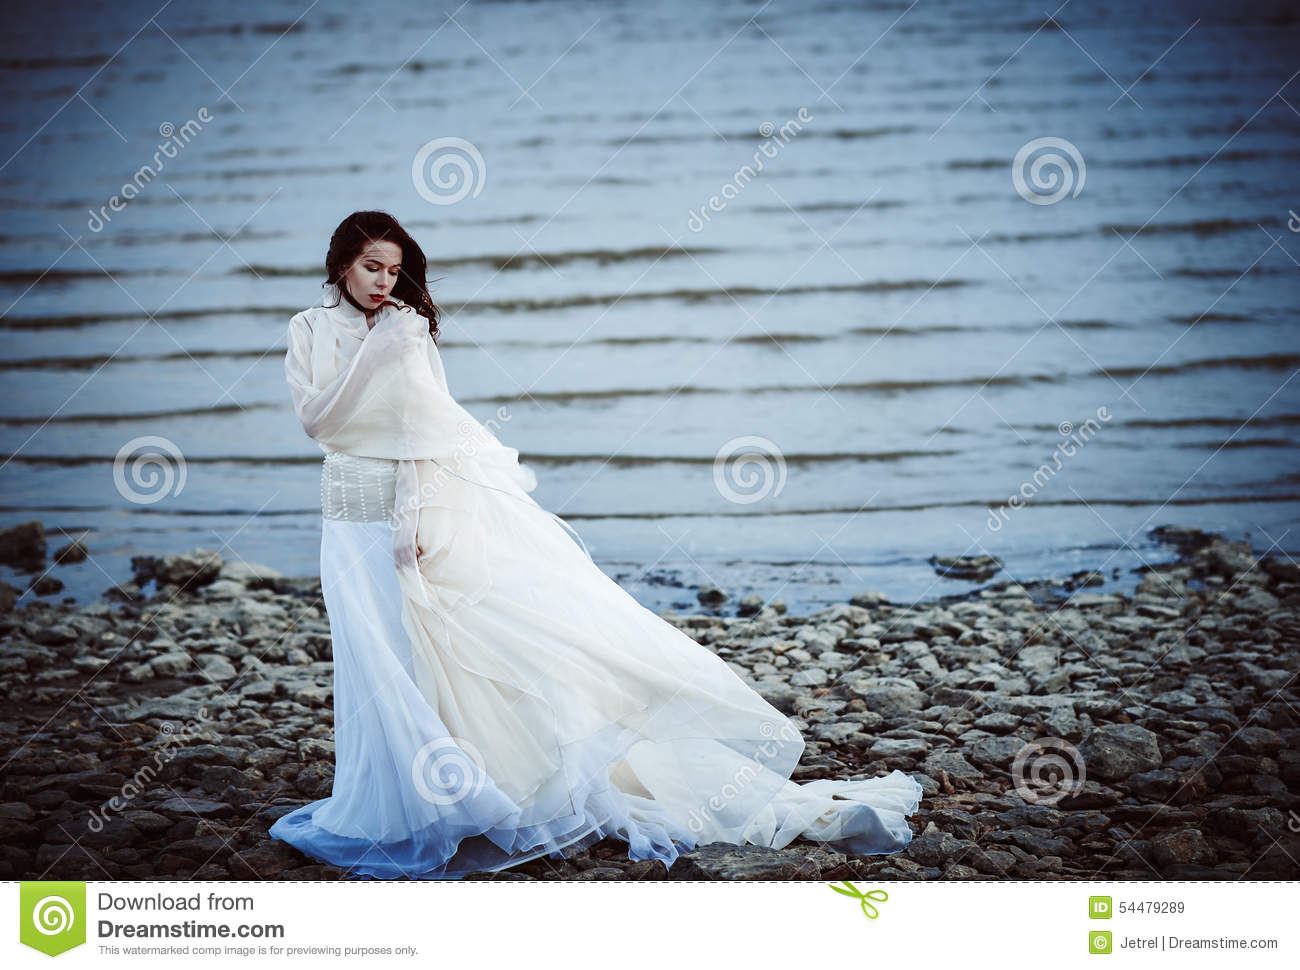 White dress by the shore - Beautiful Sad Girl In White Dress Standing On Sea Shore